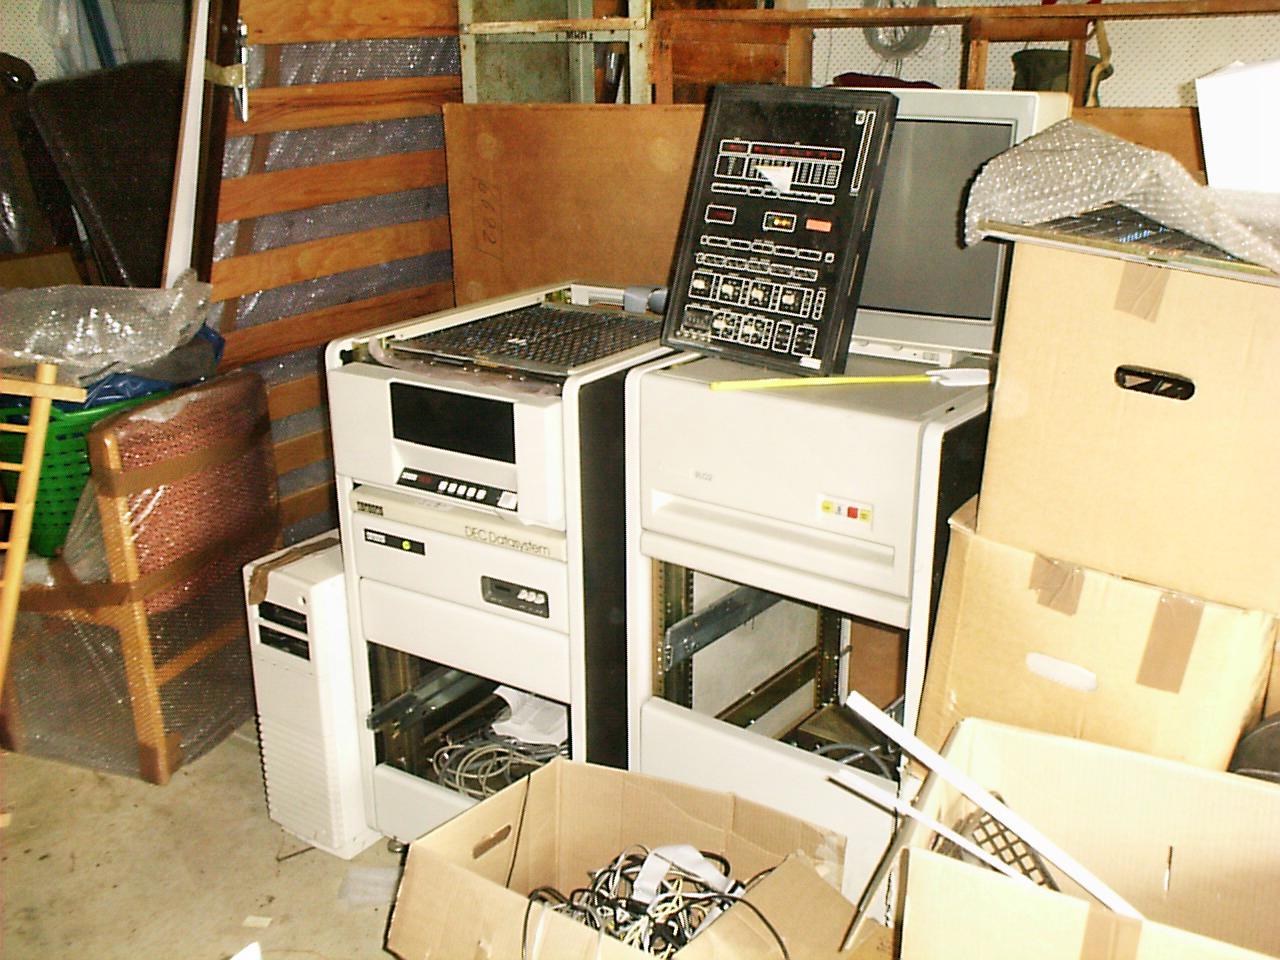 computers-in-shed.jpeg